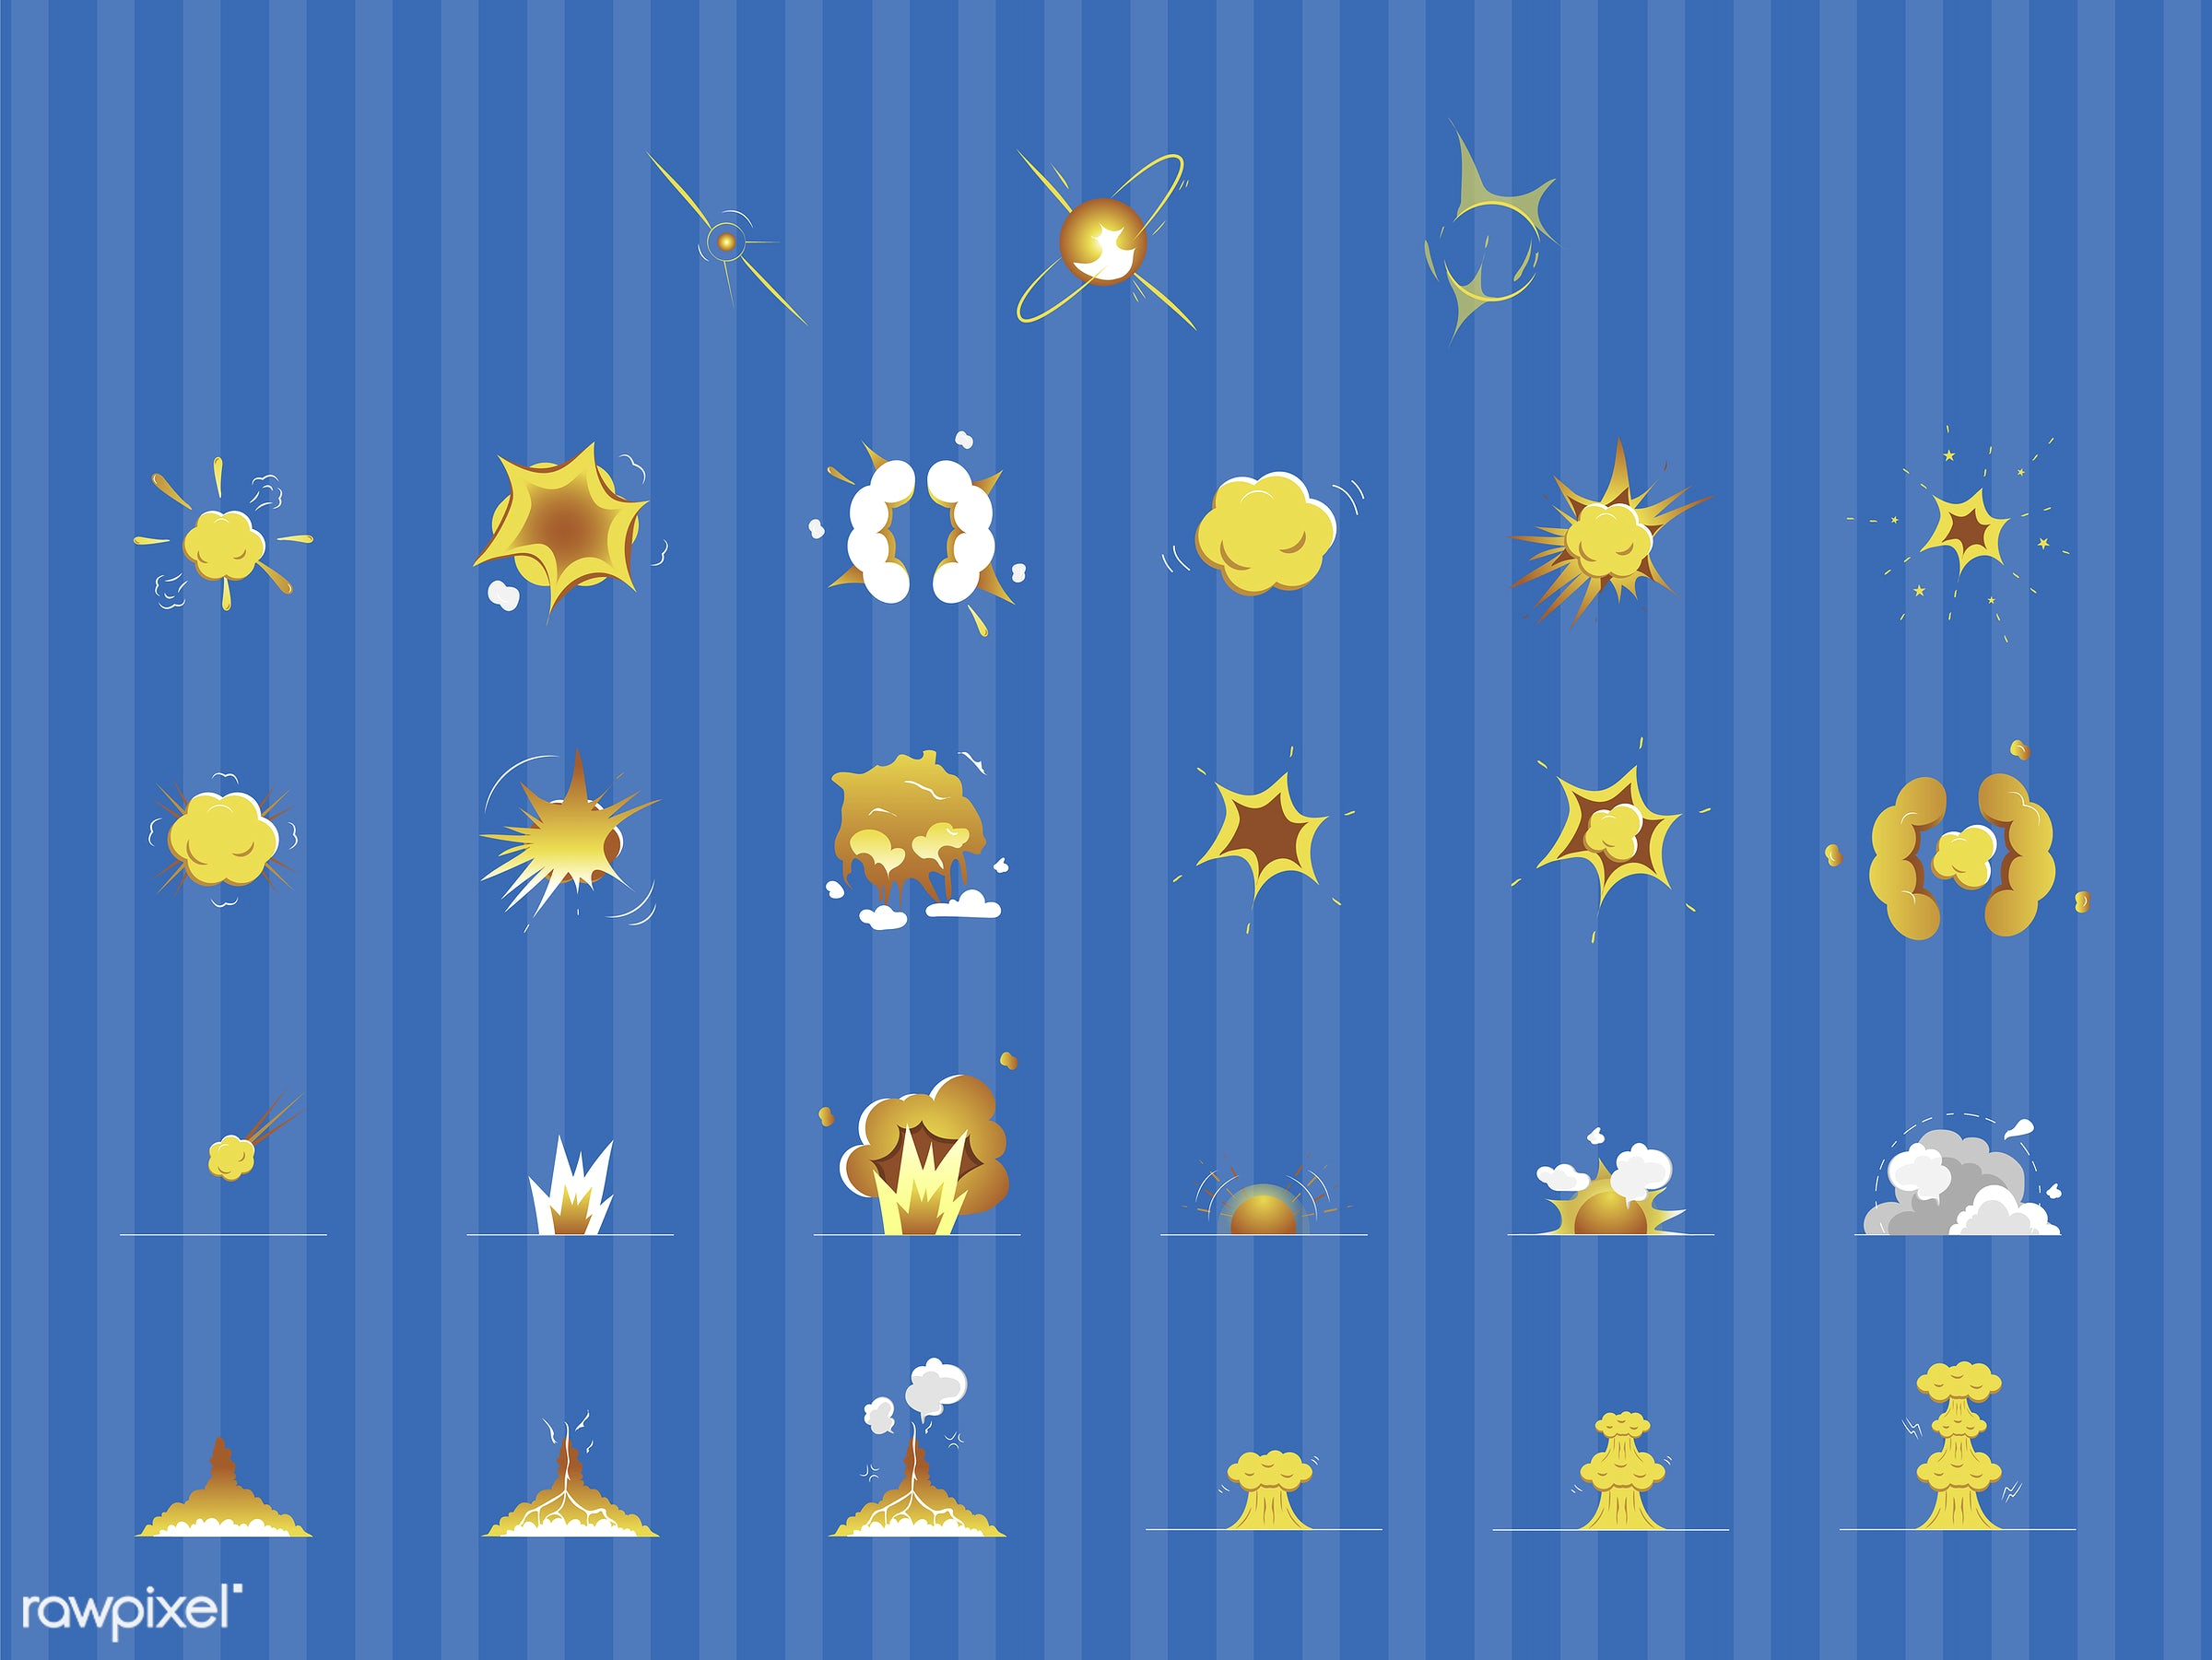 vector, illustration, graphic, bomb, boom, pow, explosion, collection, set, blue, striped, copy space, effect, yellow, cloud...